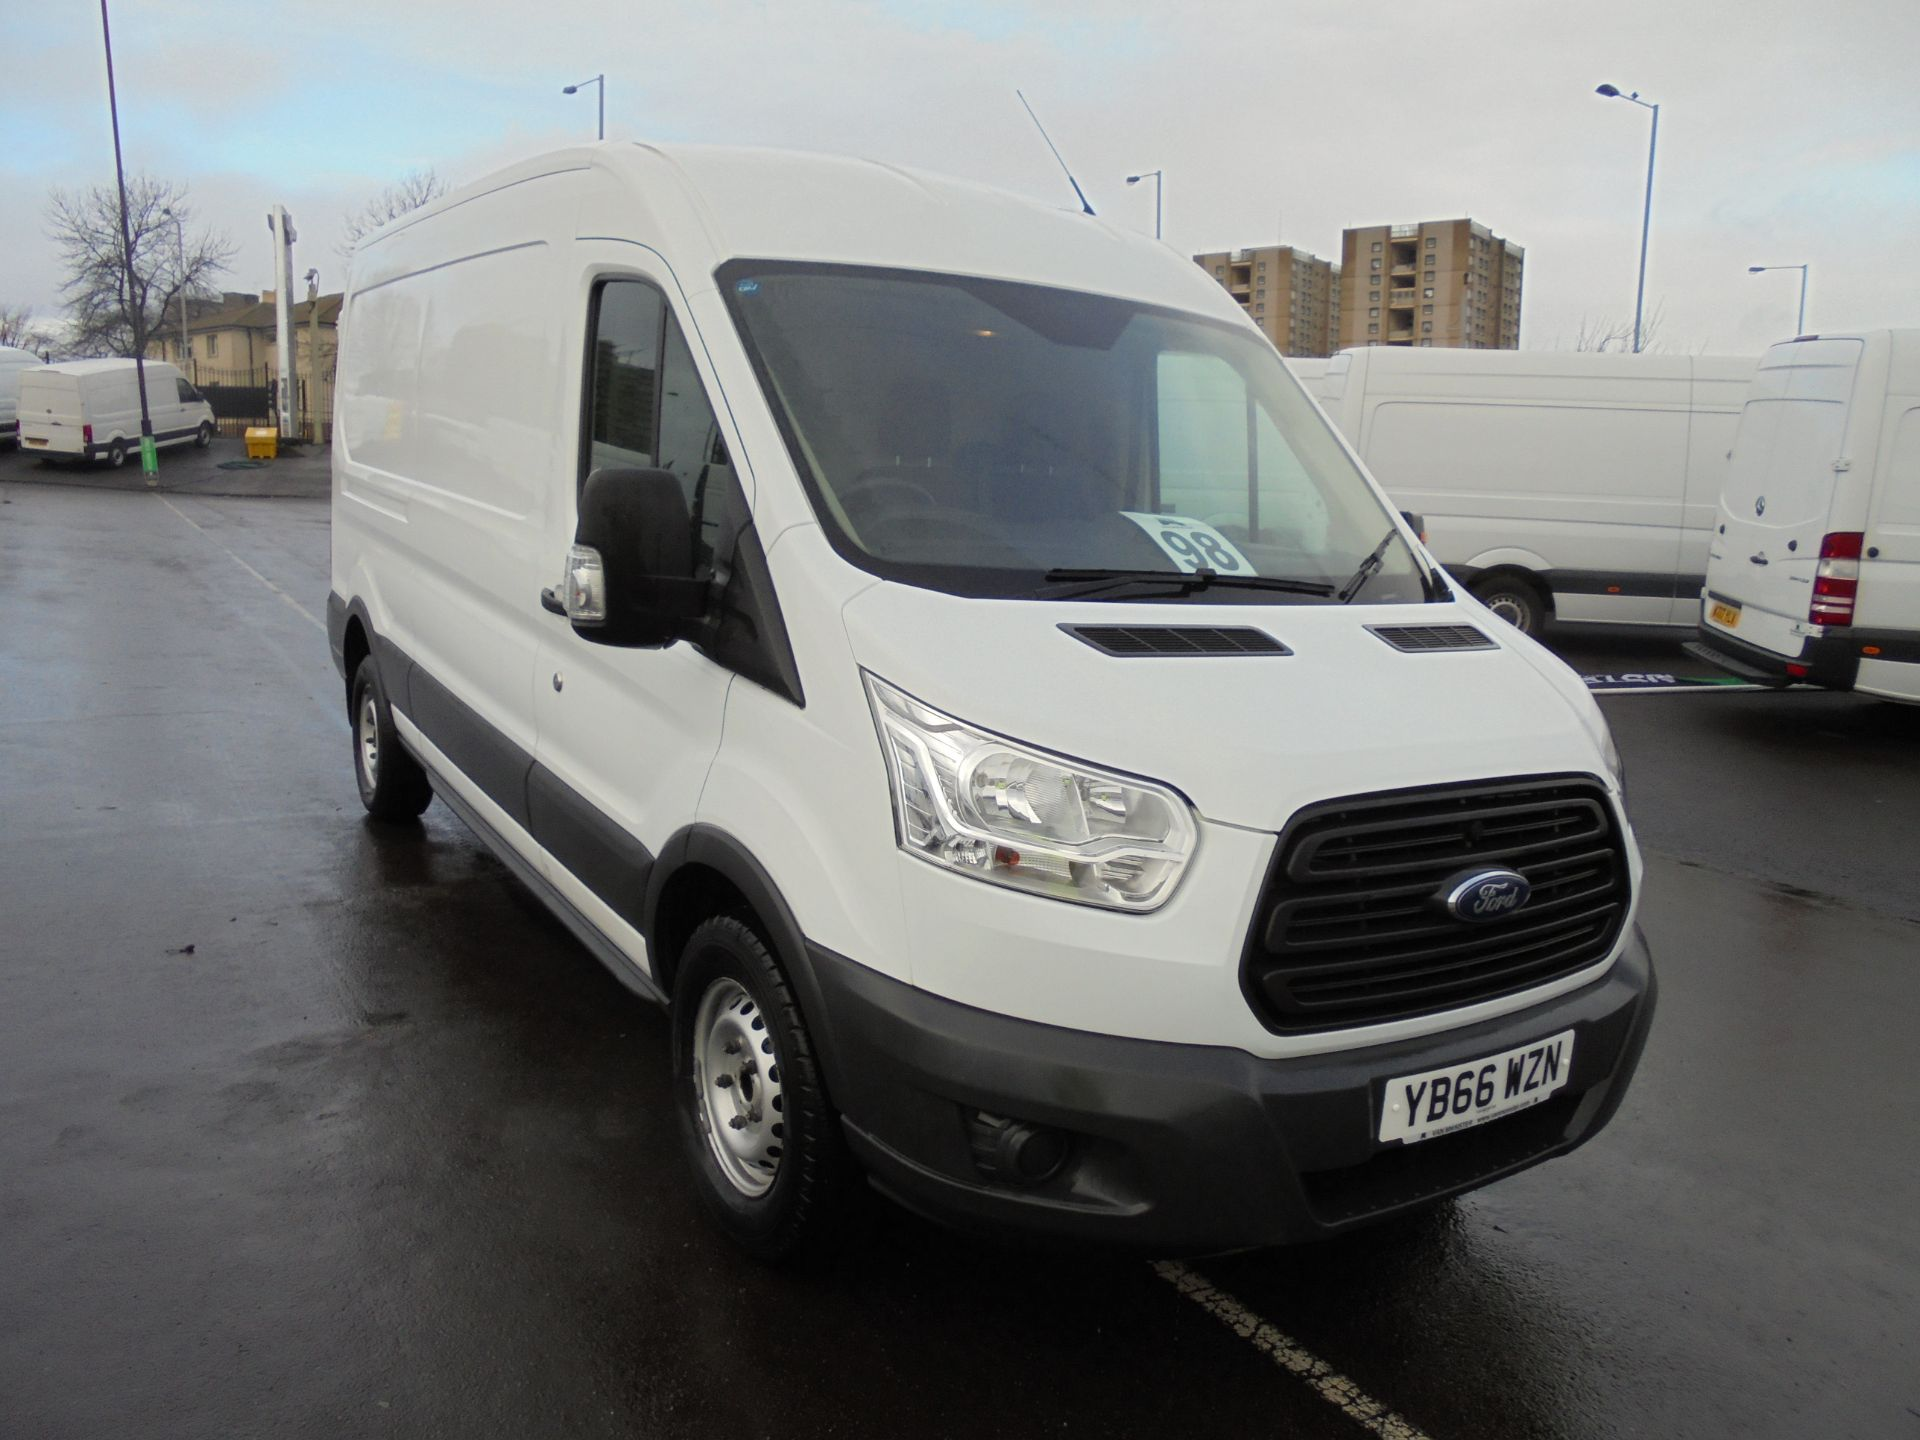 2016 Ford Transit 350 2.2 Tdci 125Ps L3 H2 Van Aftermarket Alarm and Security Locks (YB66WZN)